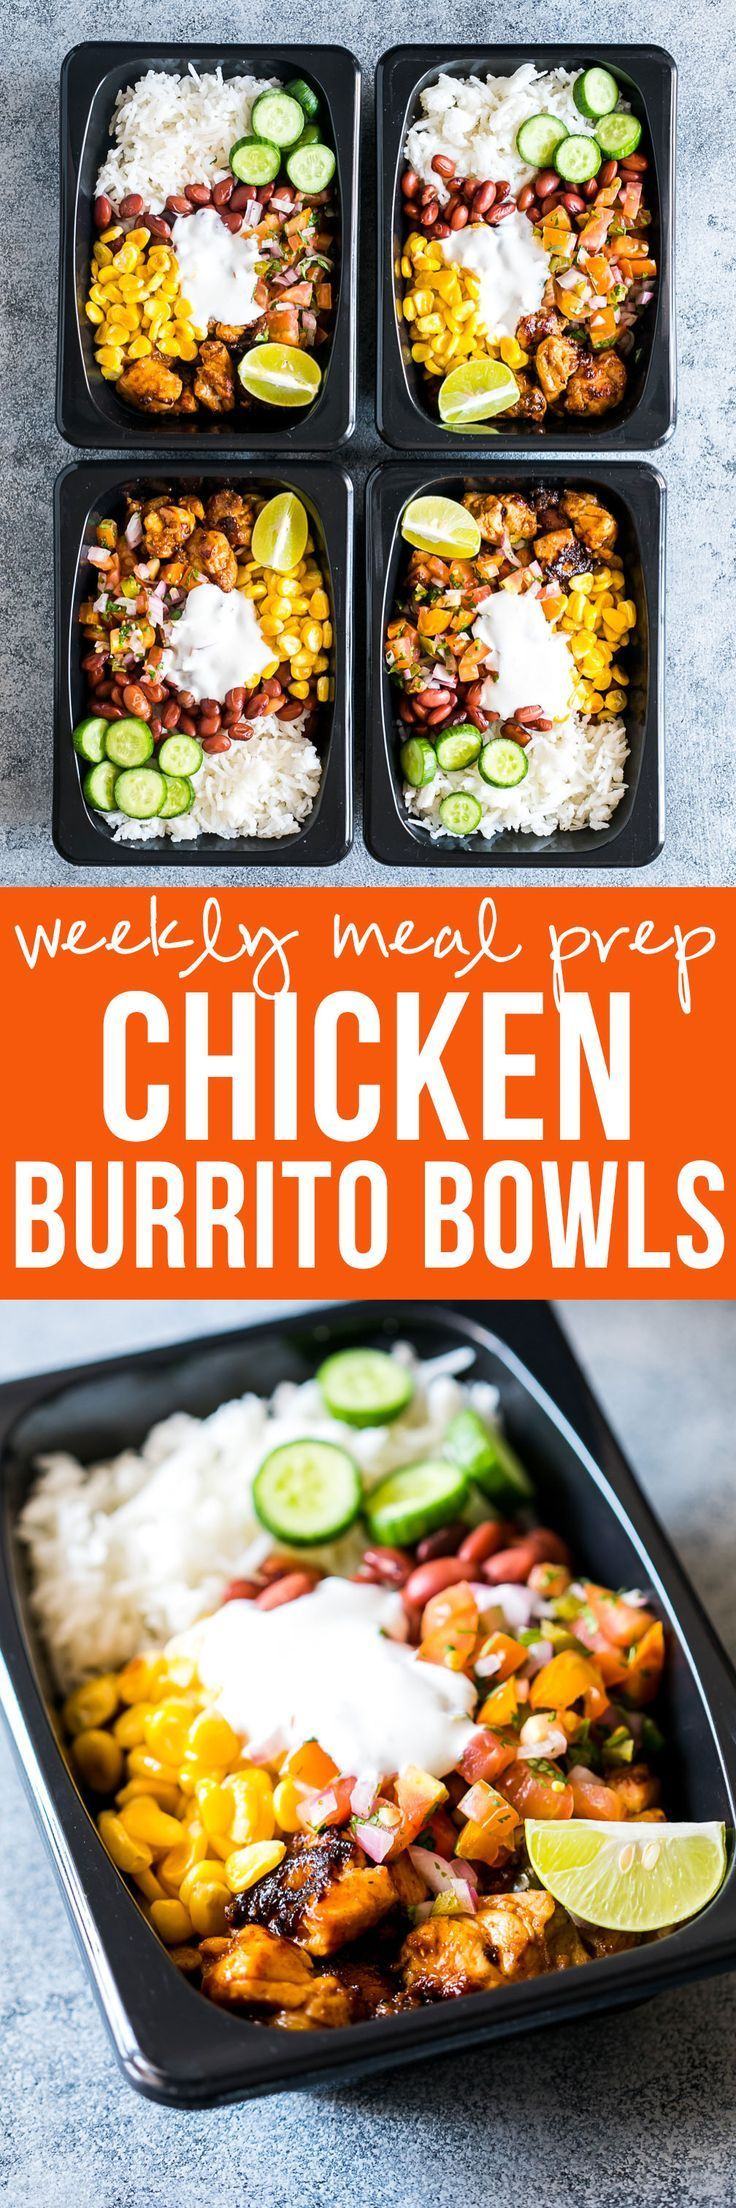 Easy Chicken Burrito Meal Prep Bowls Recipe Lunch Meal Prep